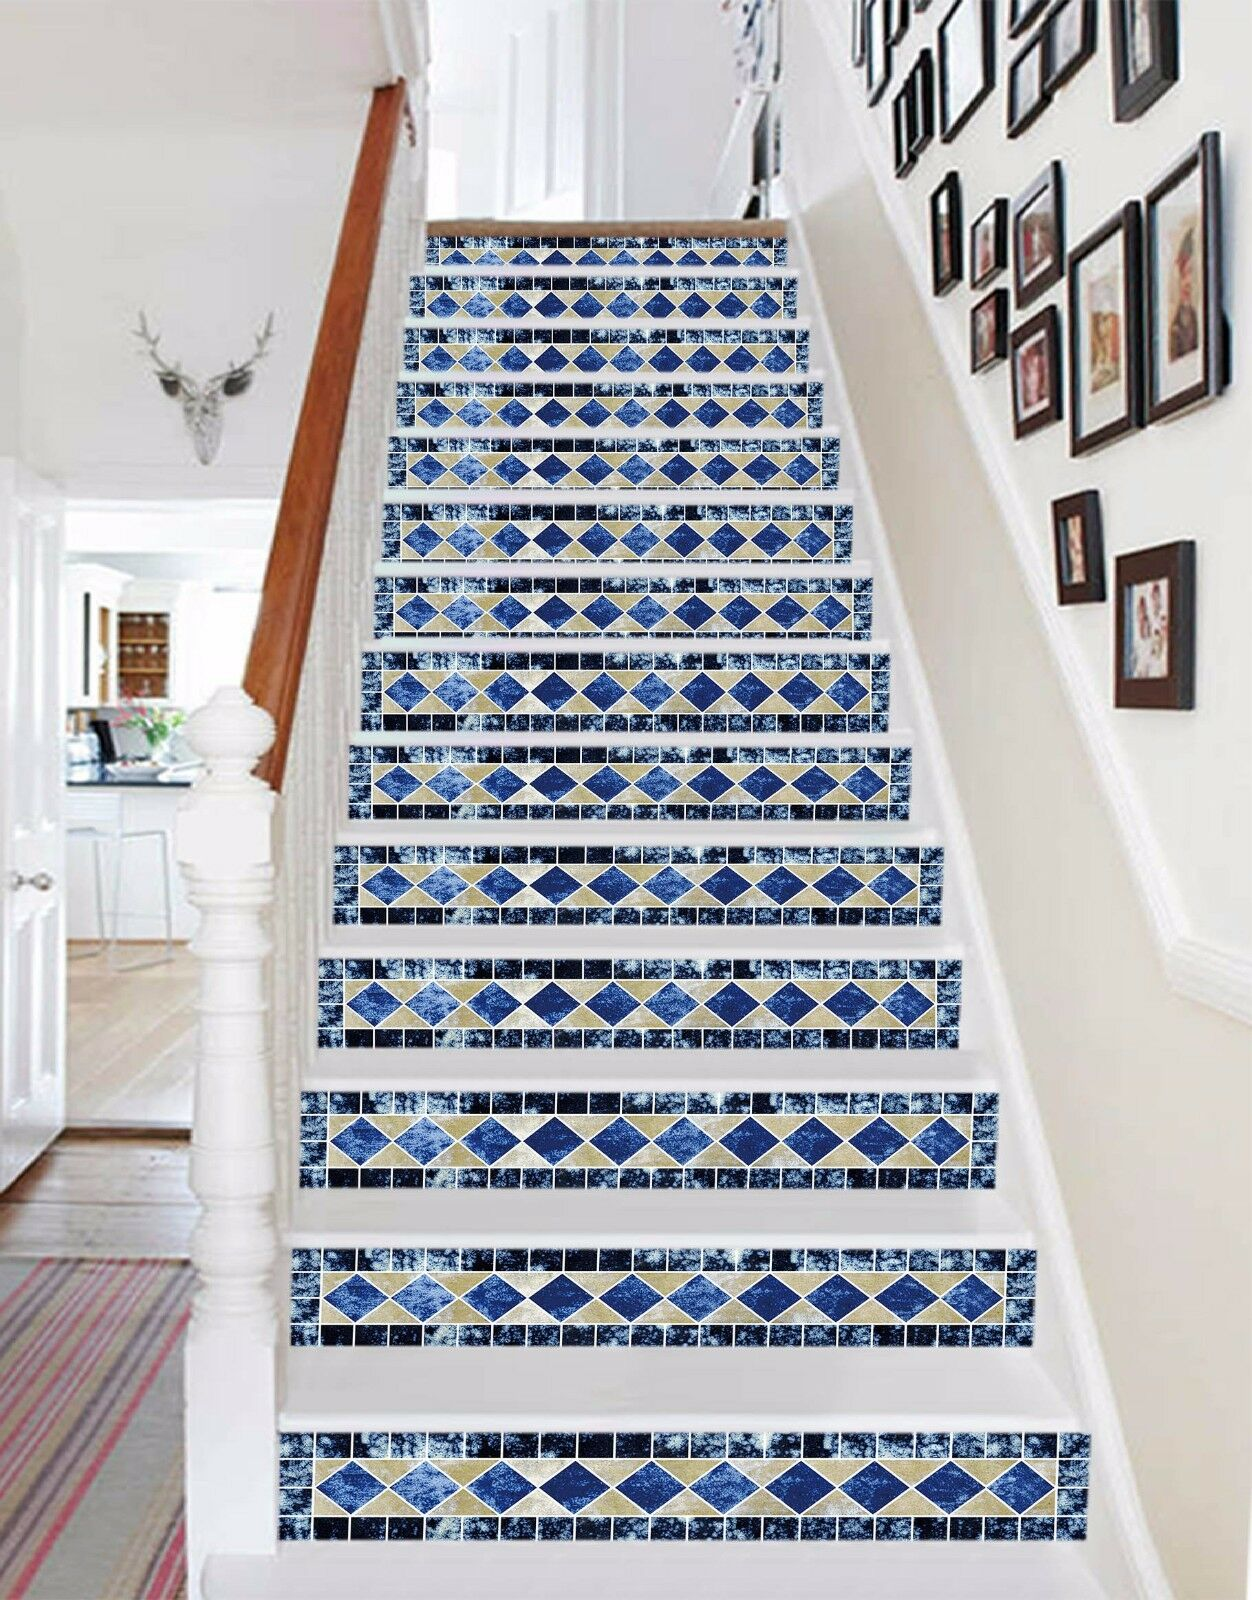 3D Square Pattern 1 Stair Risers Decoration Photo Mural Vinyl Decal Wallpaper AU